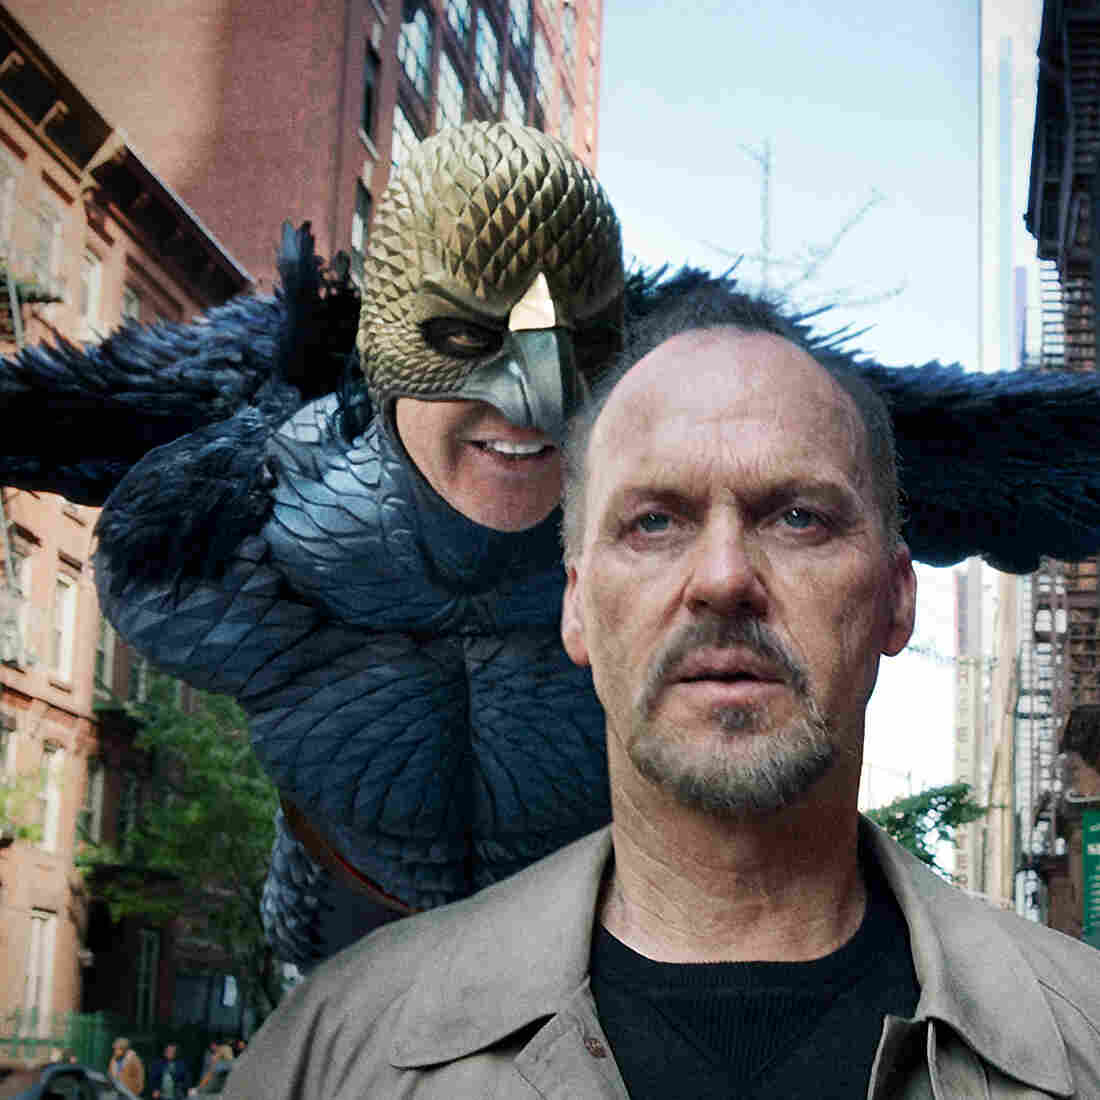 From 'Batman' To 'Birdman,' Michael Keaton Knows Suits And Superheroes